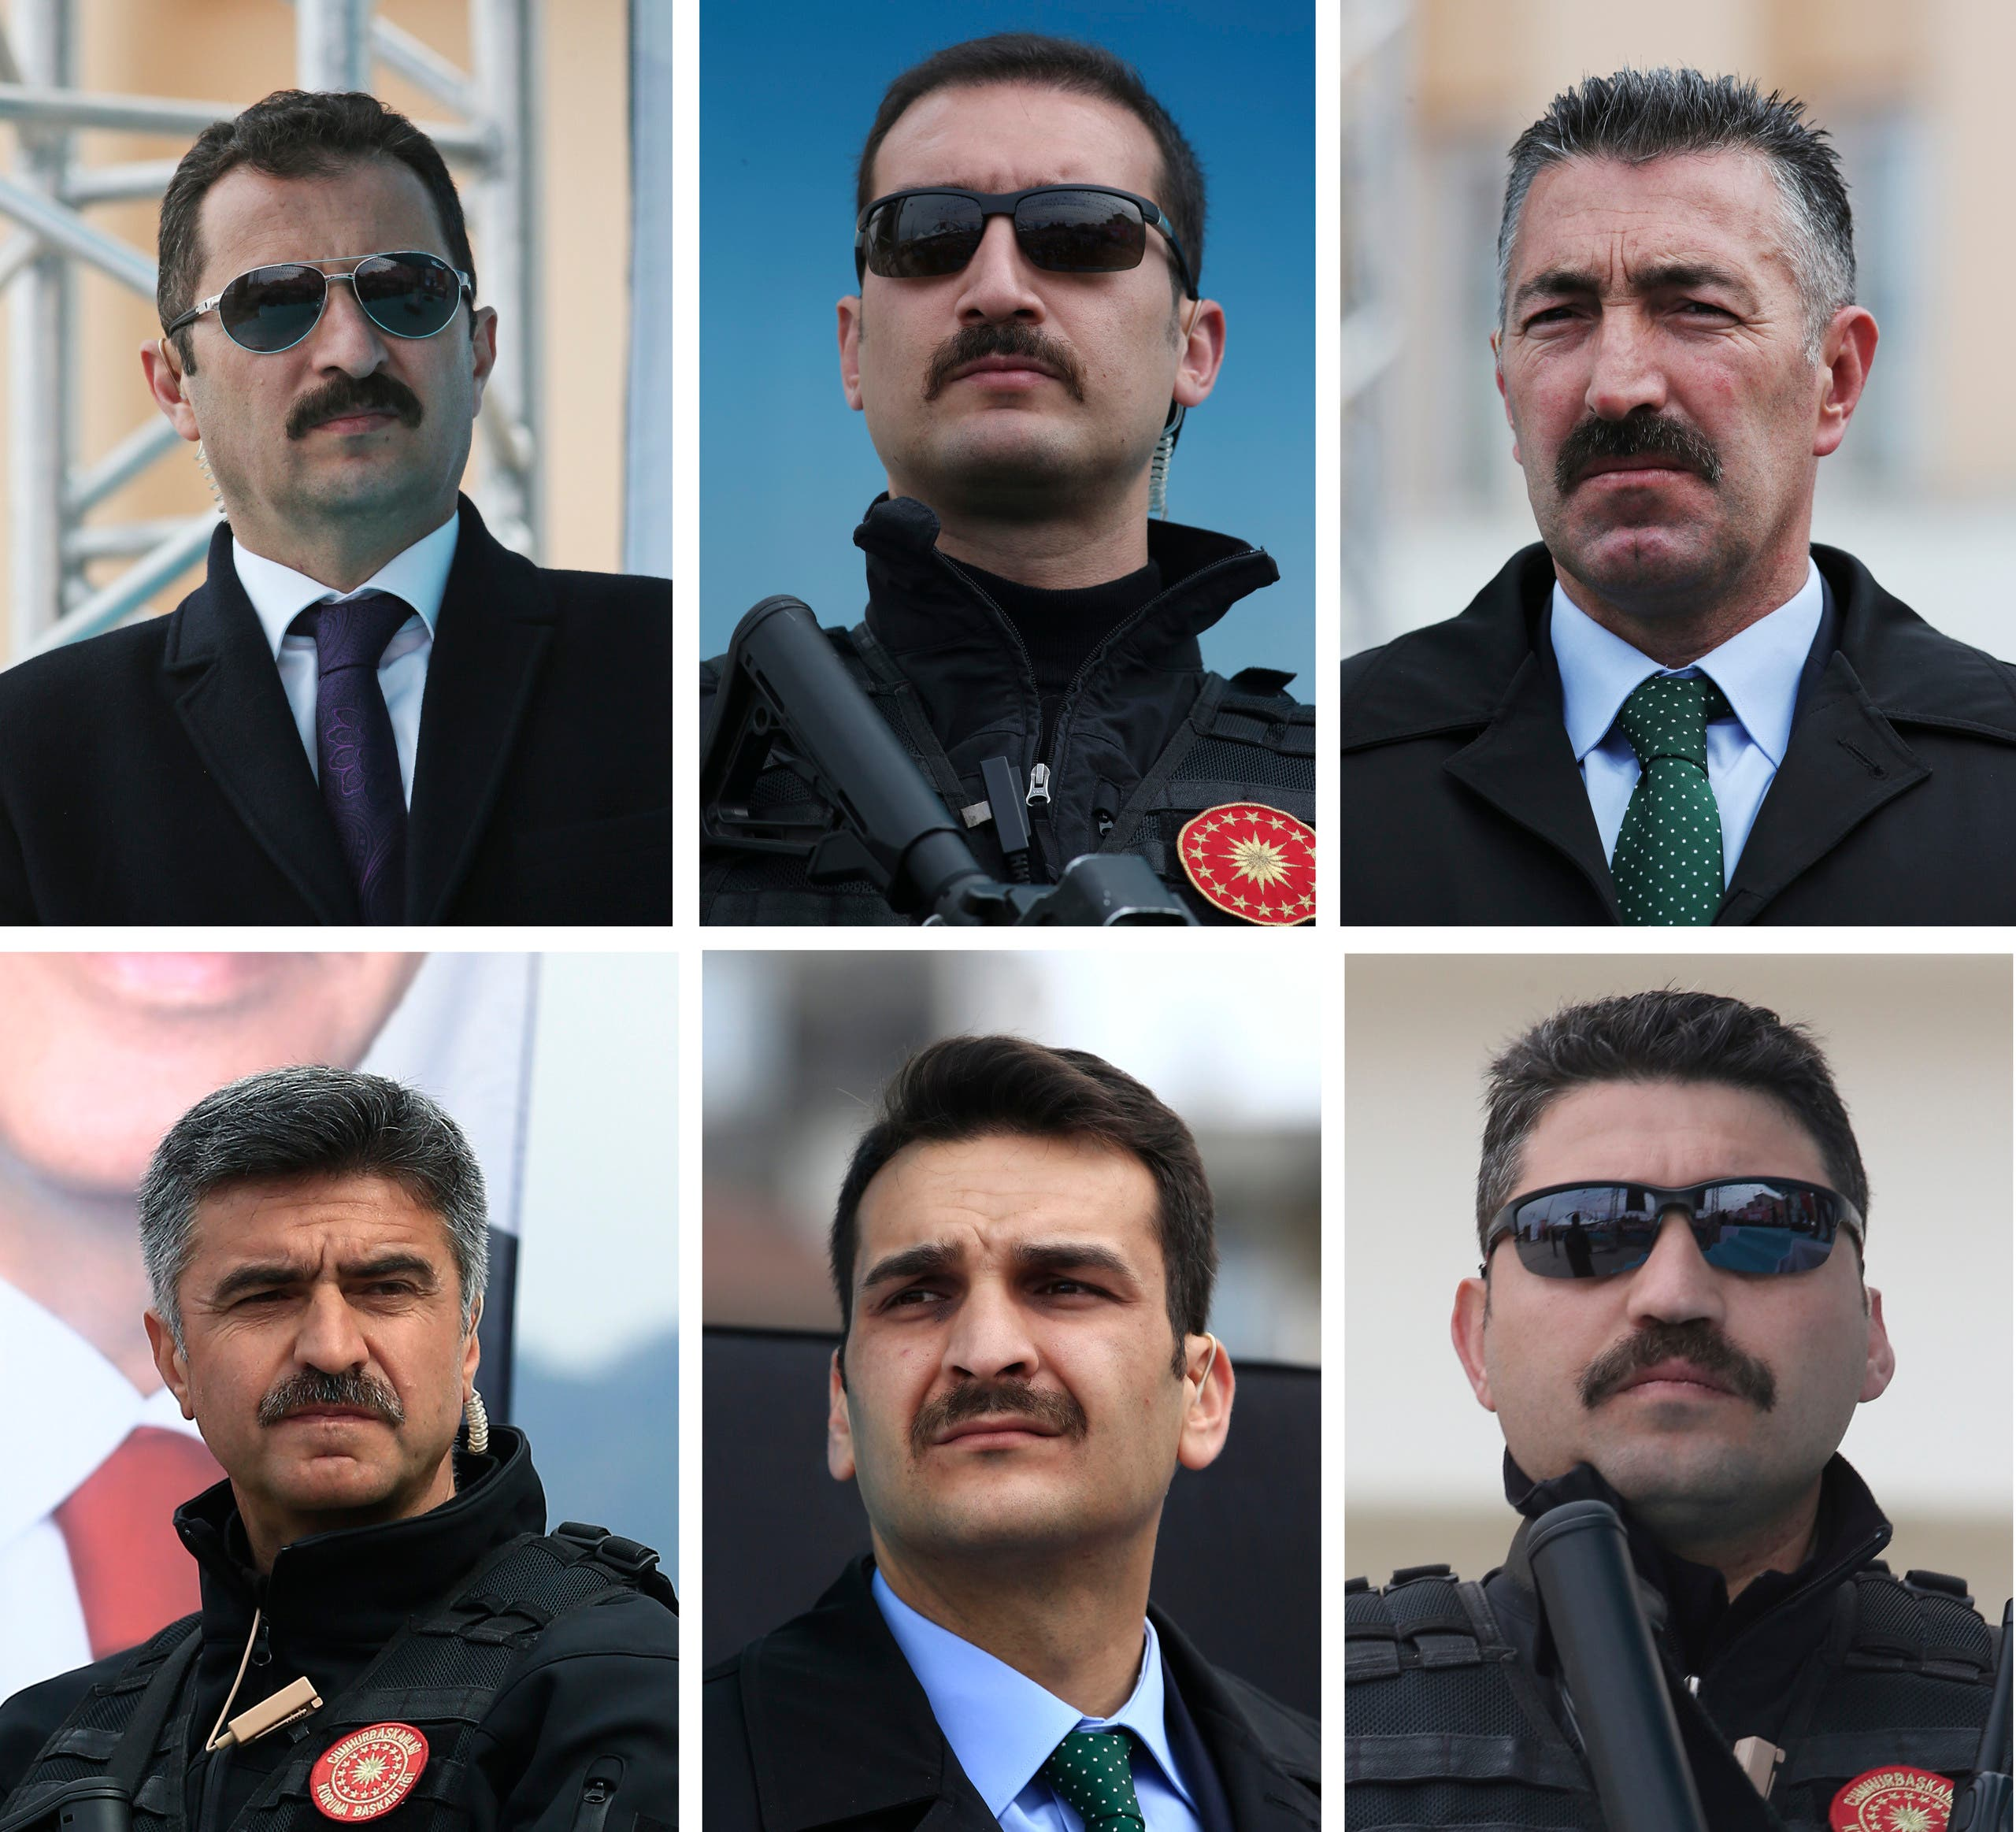 In this combo of images taken on Monday April 3, 2017, security personnel of Turkey's President Recep Tayyip Erdogan stand guard during his speech at a rally in his hometown Black Sea city of Rize, Turkey.